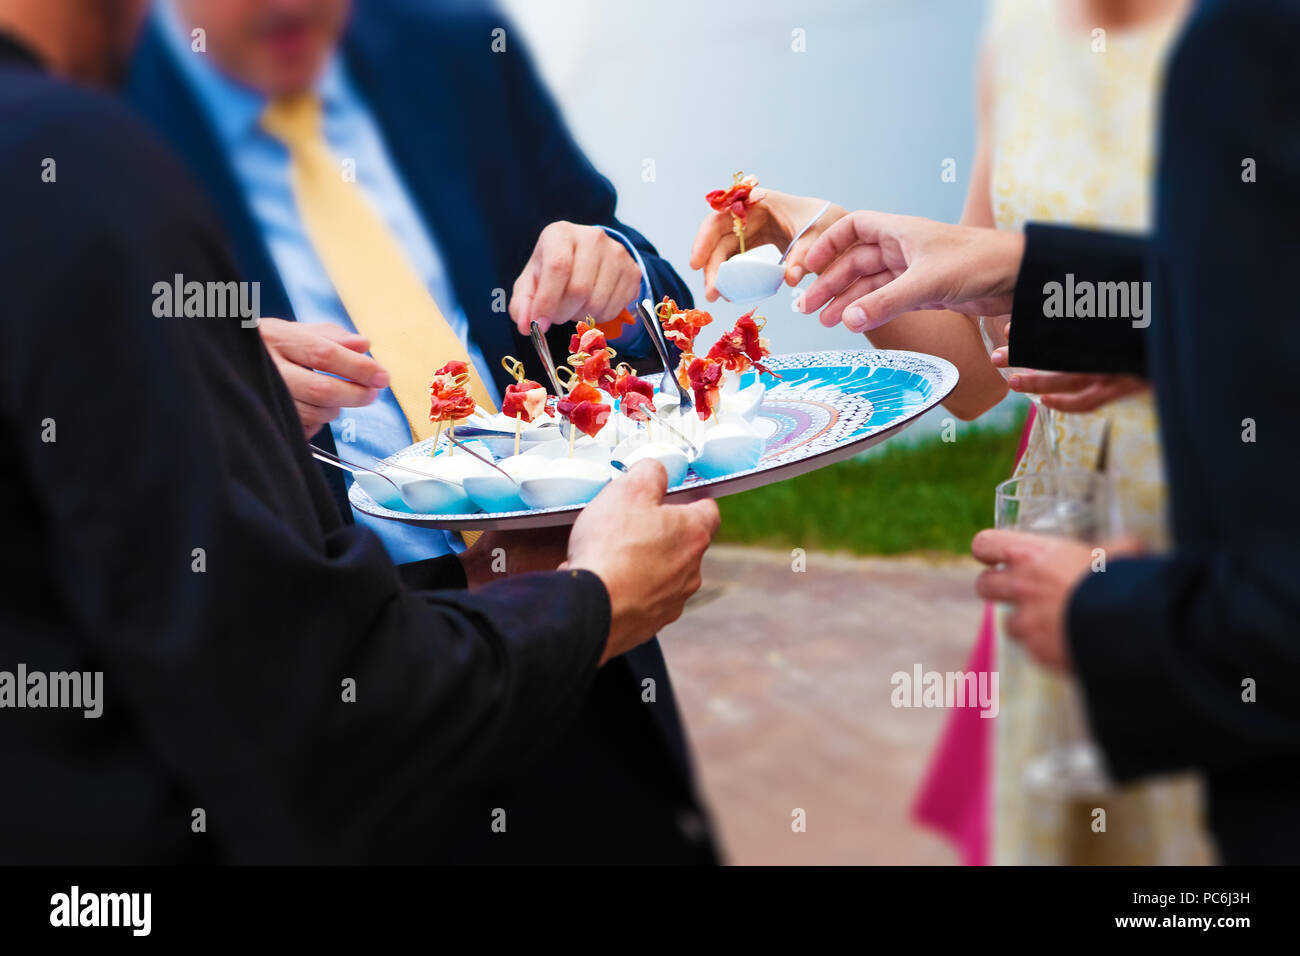 Food and catering. Wedding celebration and banquet. Wedding guests eating an appetizer Stock Photo